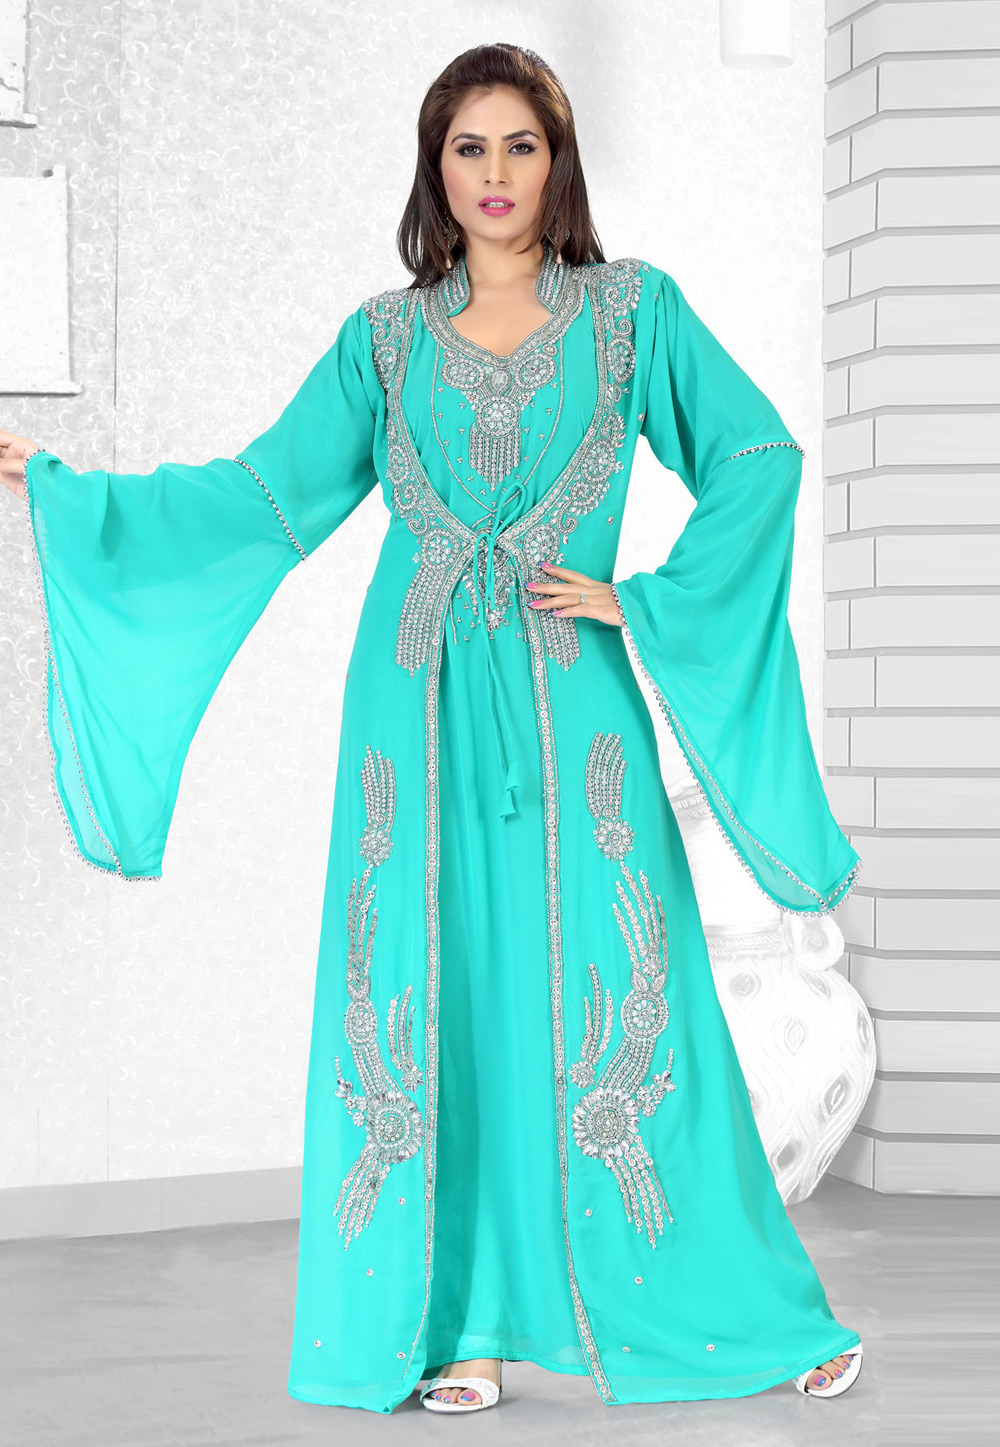 Turquoise Faux Georgette Embroidered Readymade Kaftan 194502